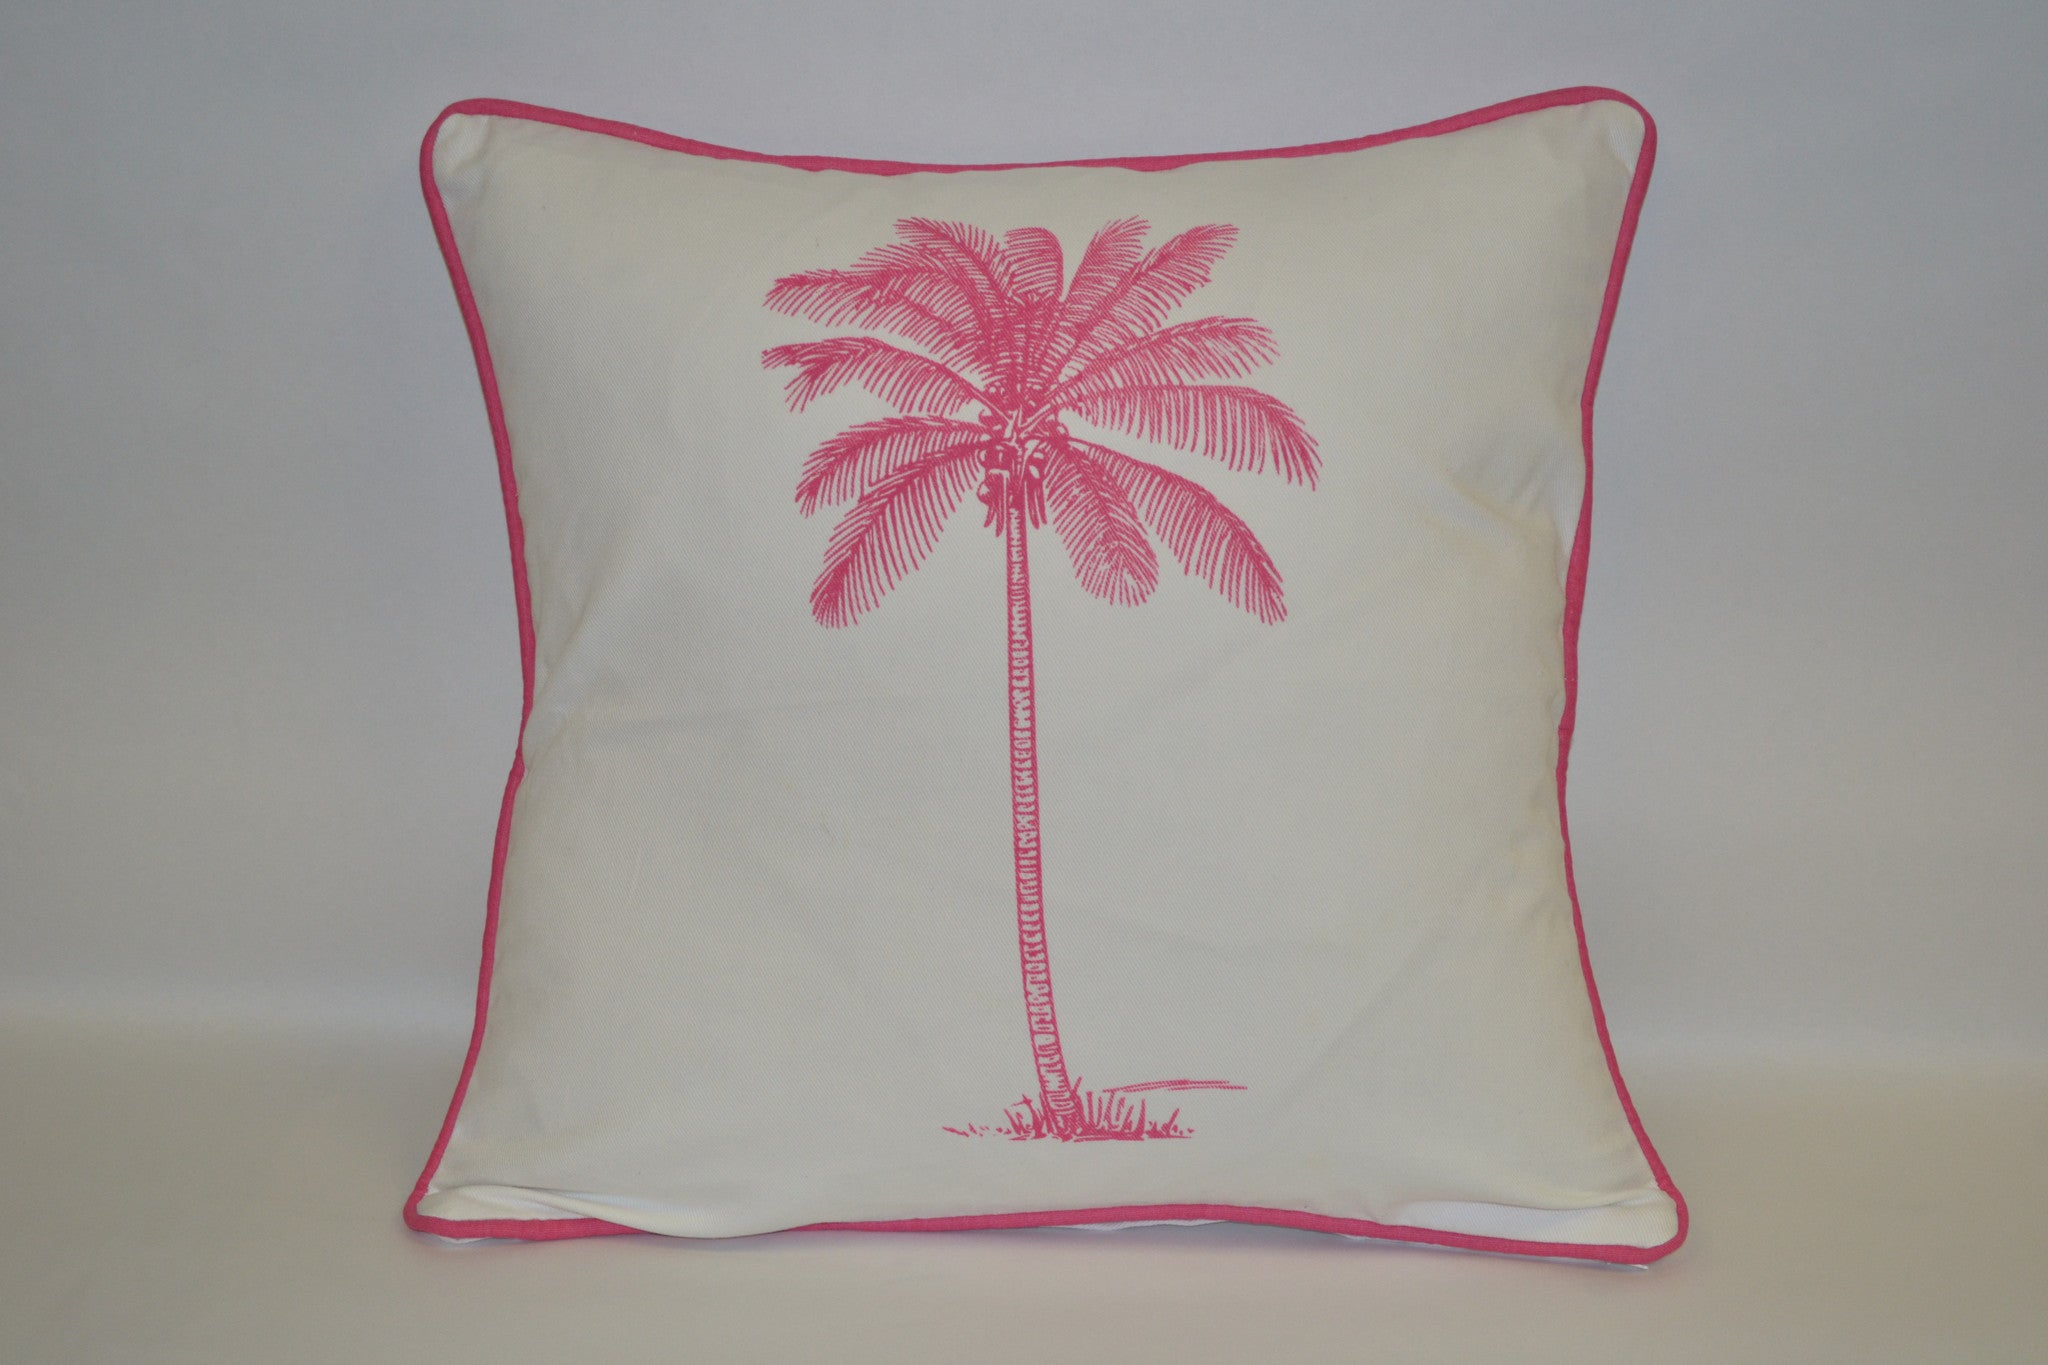 pillow - vintage beach - 20 x 20 cover  pink palm tree piped